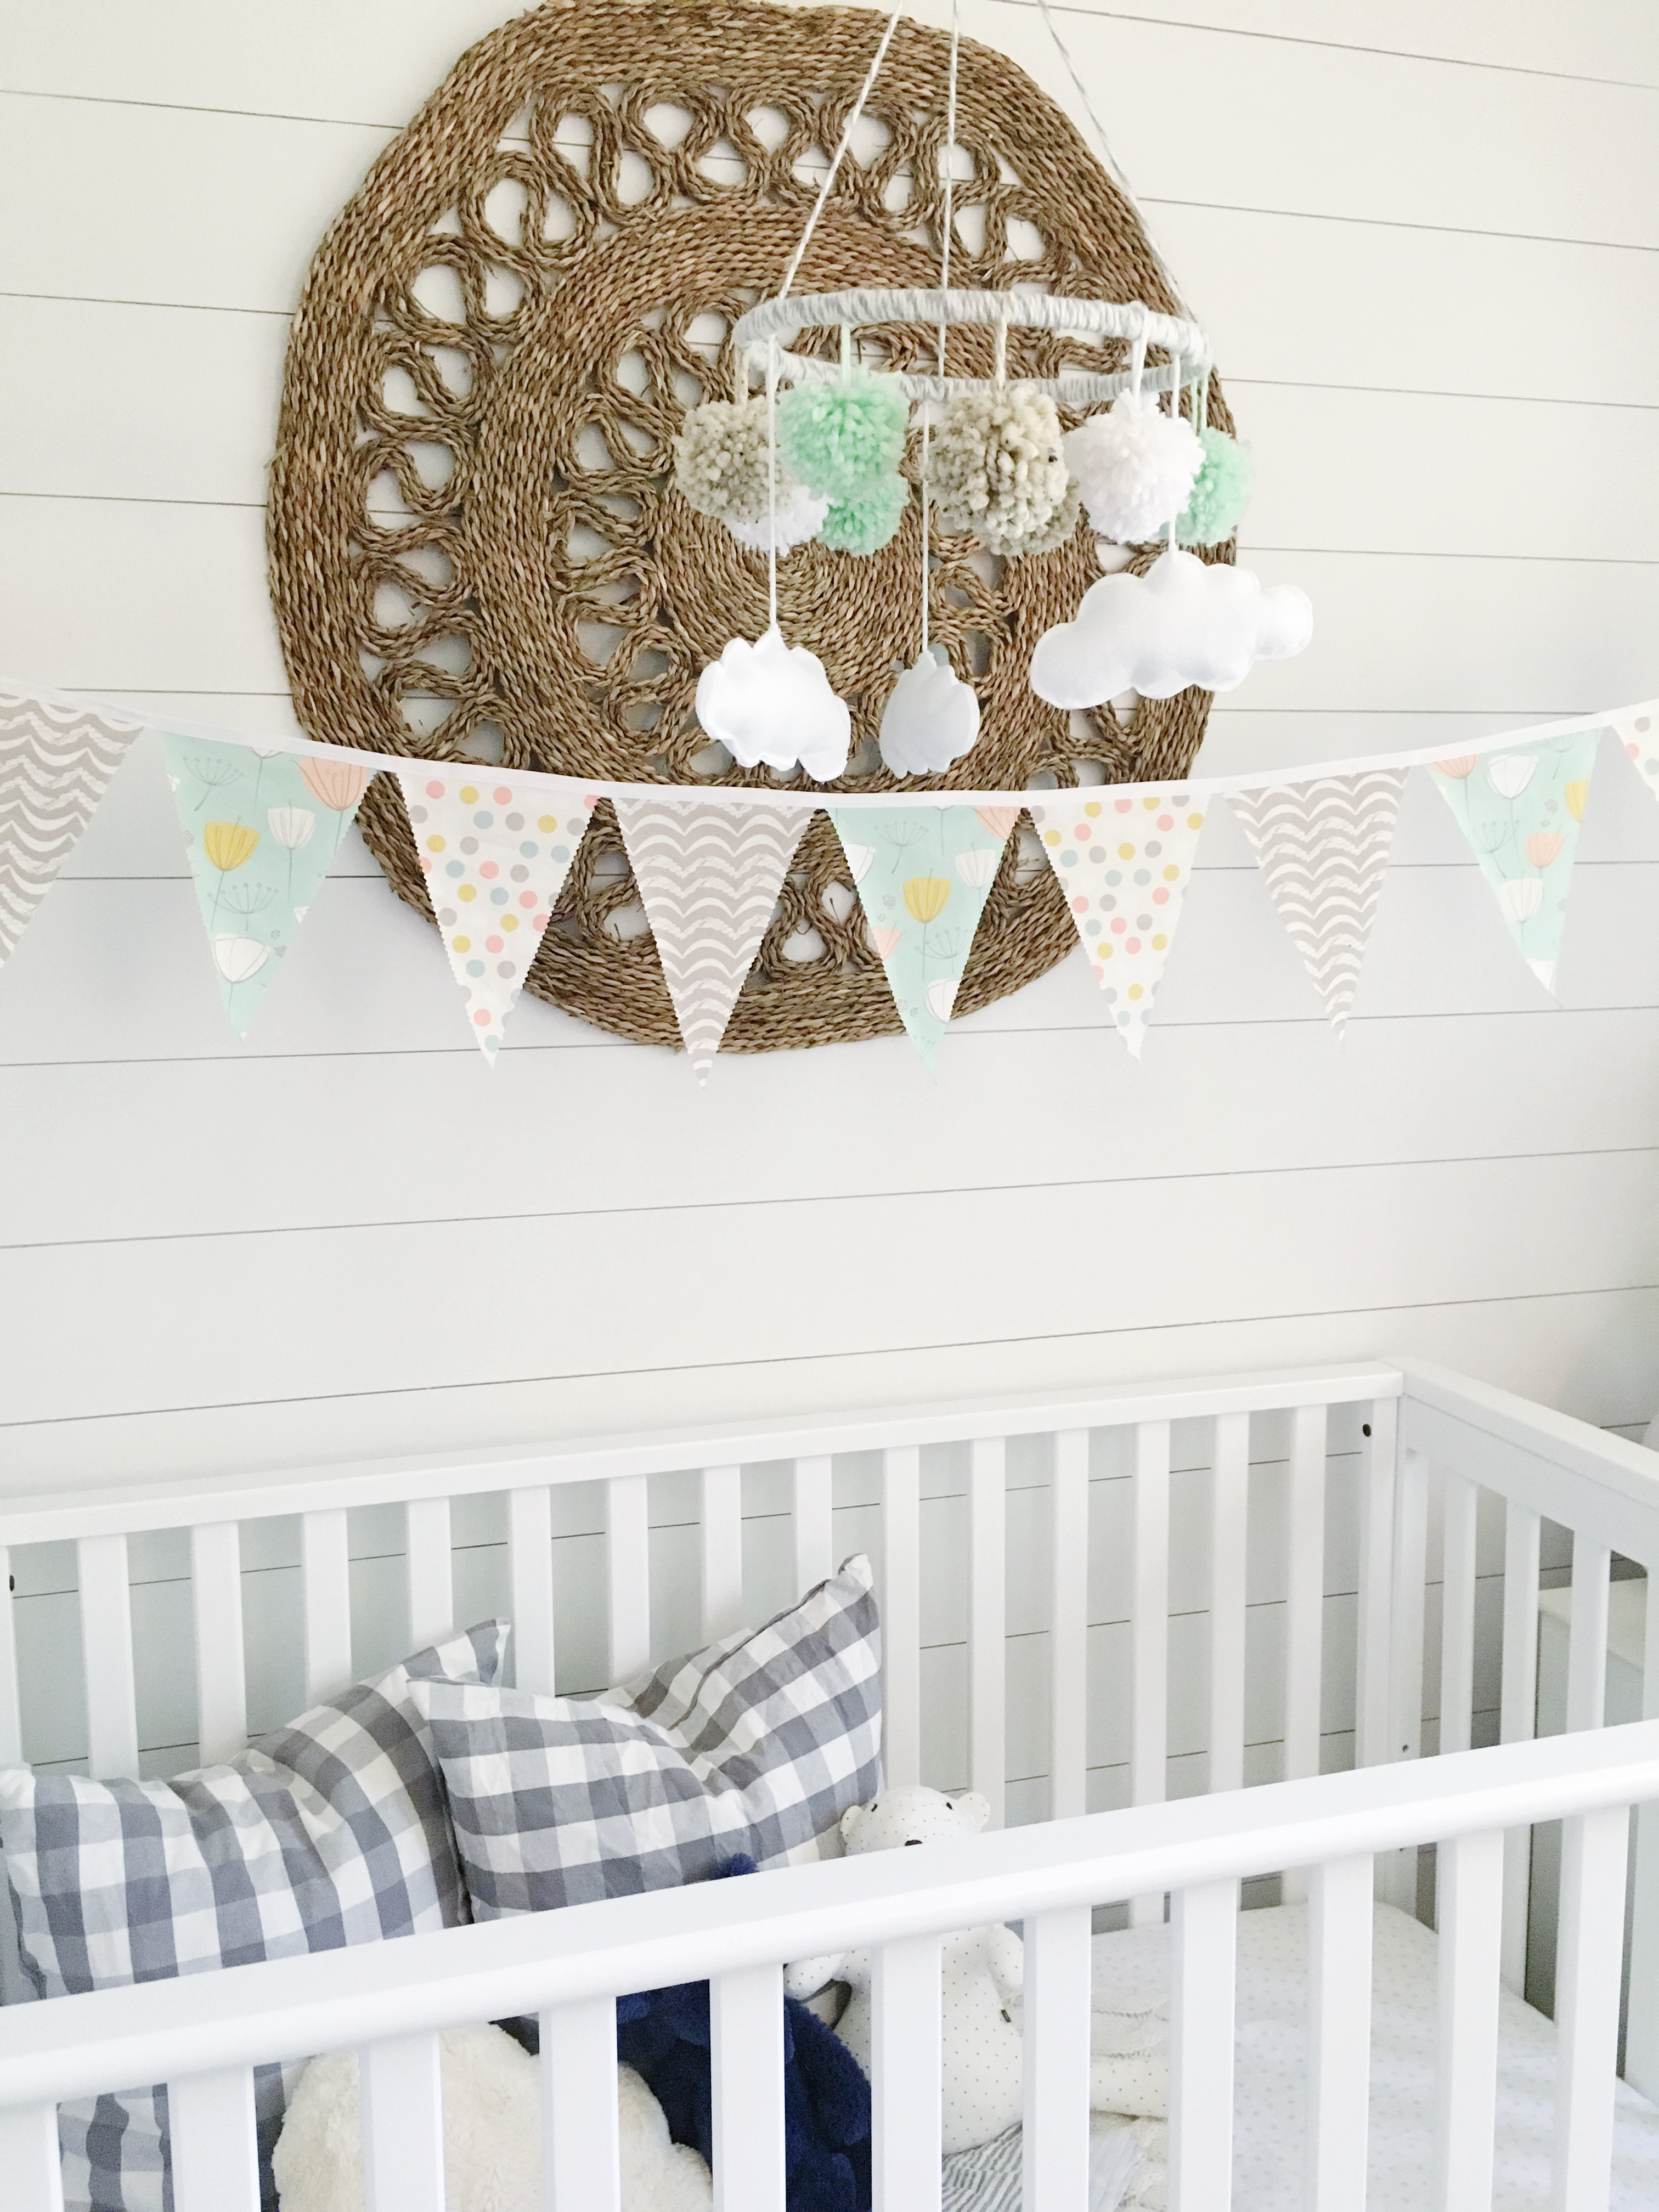 Whimsical Mint and Gray Nursery Gender Neutral Nursery with Mint Accents - Project Nursery